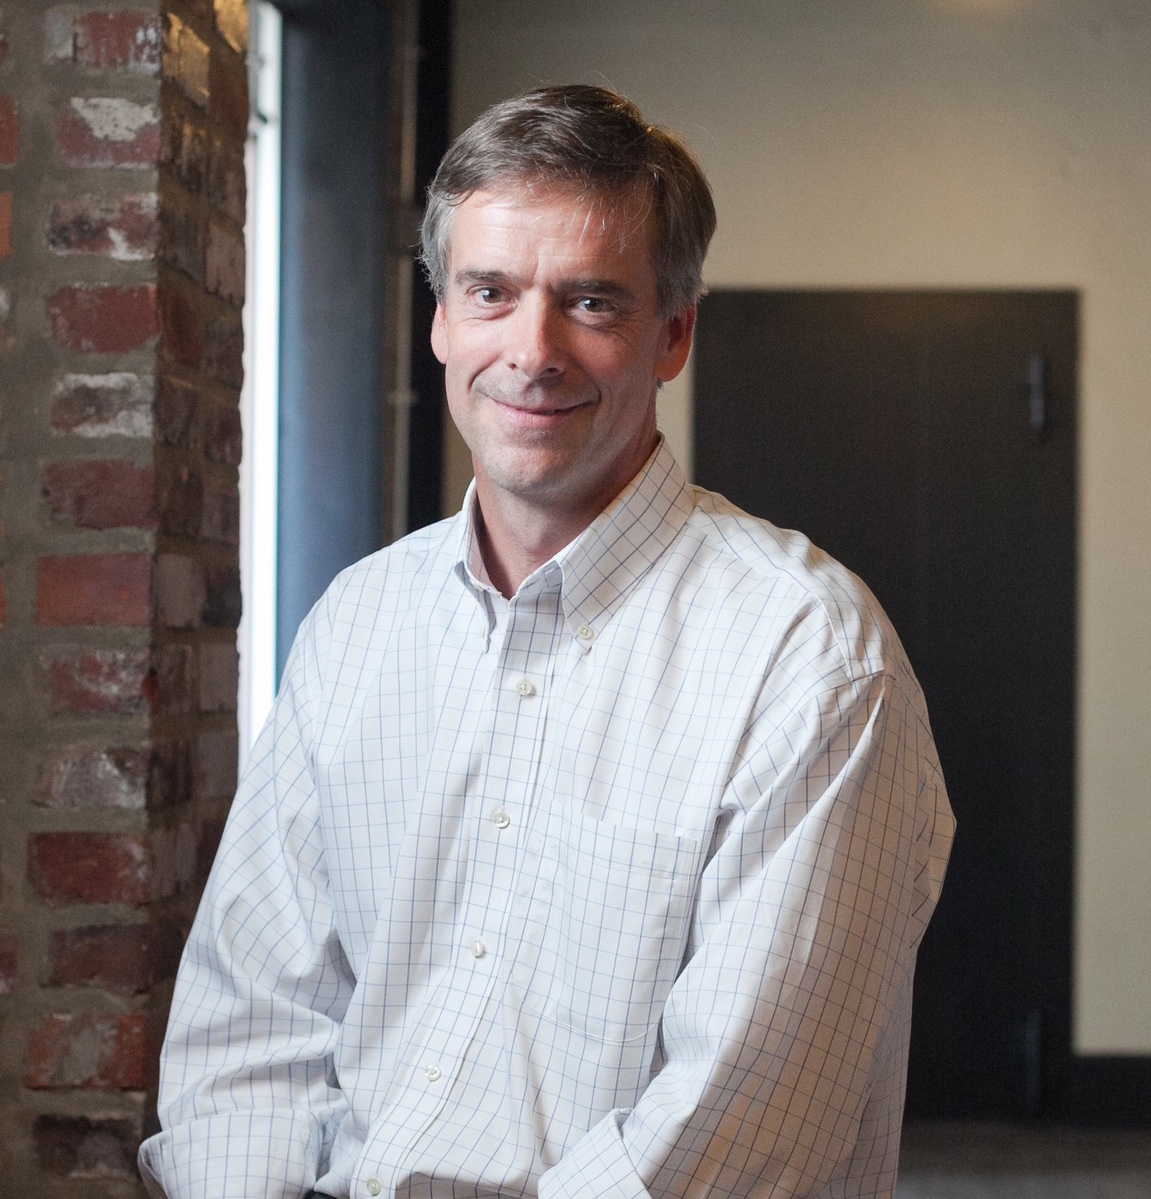 Charlie Brock, CEO of Launch Tennessee